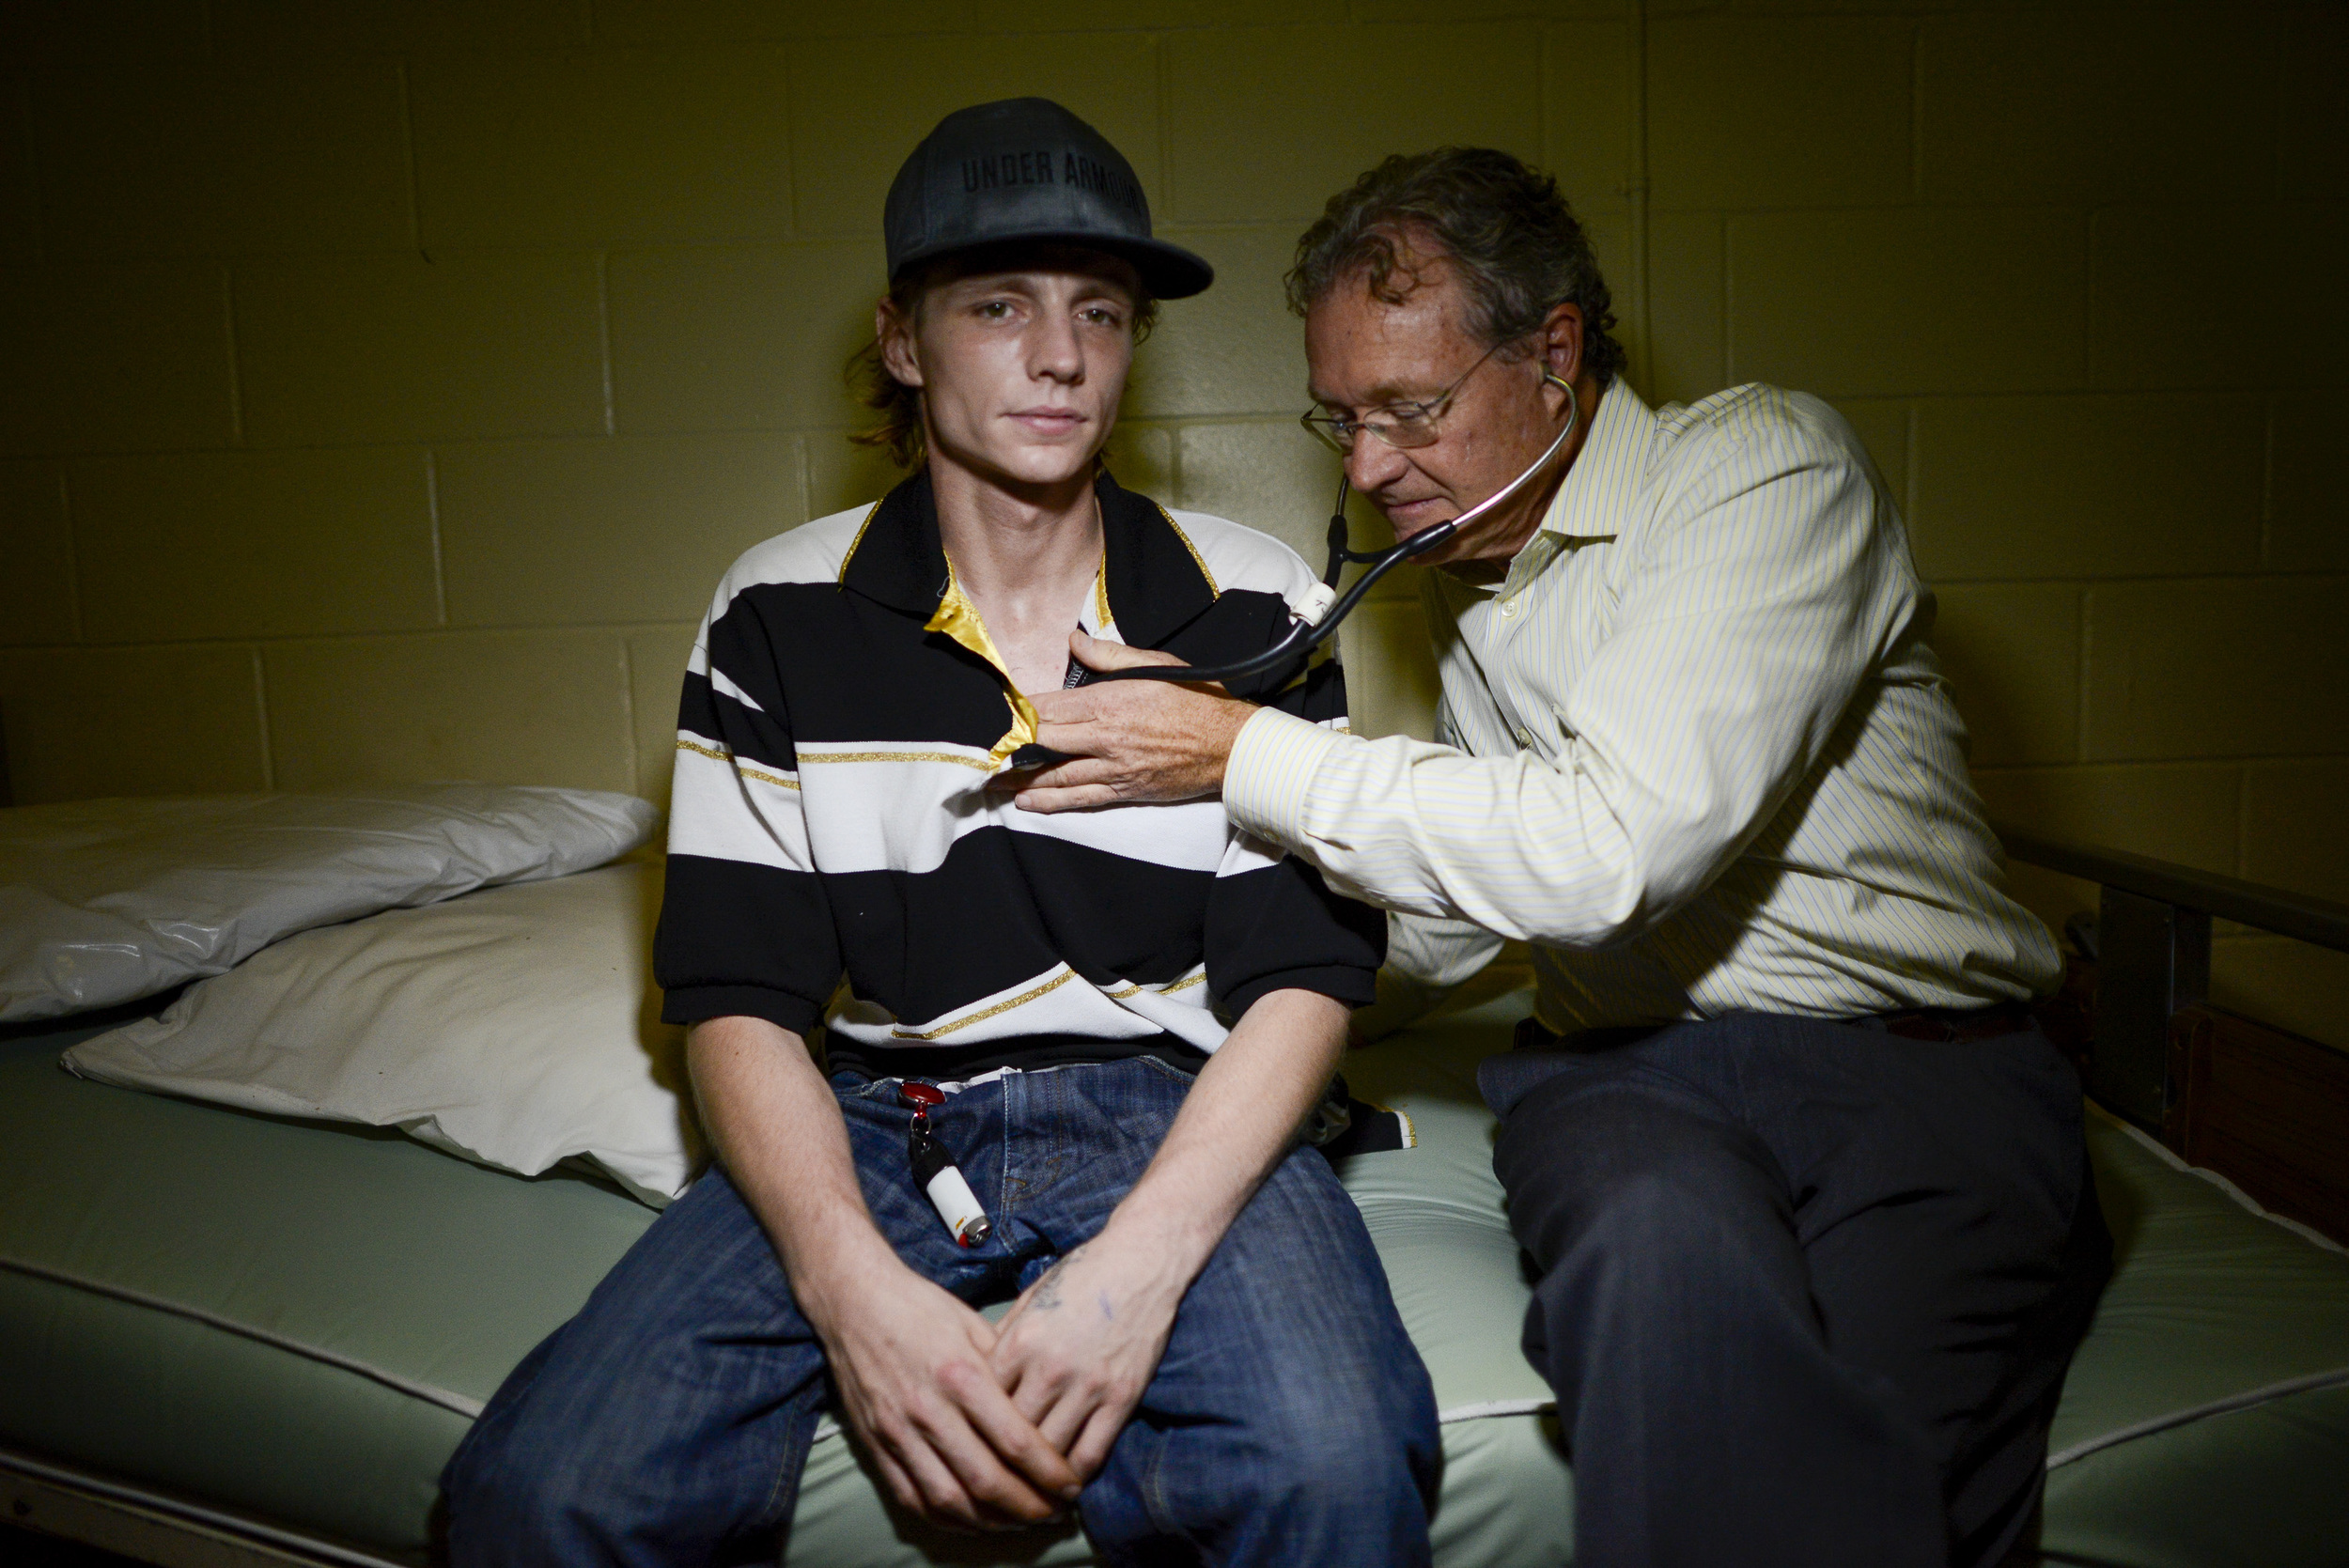 Doctor Jeff Turnbull from the Ottawa Hospital checks up on one of his patients, Thomas Sabourin at the Salvation Army. Dr. Turnbull brings hospital services to shelters around Ottawa.